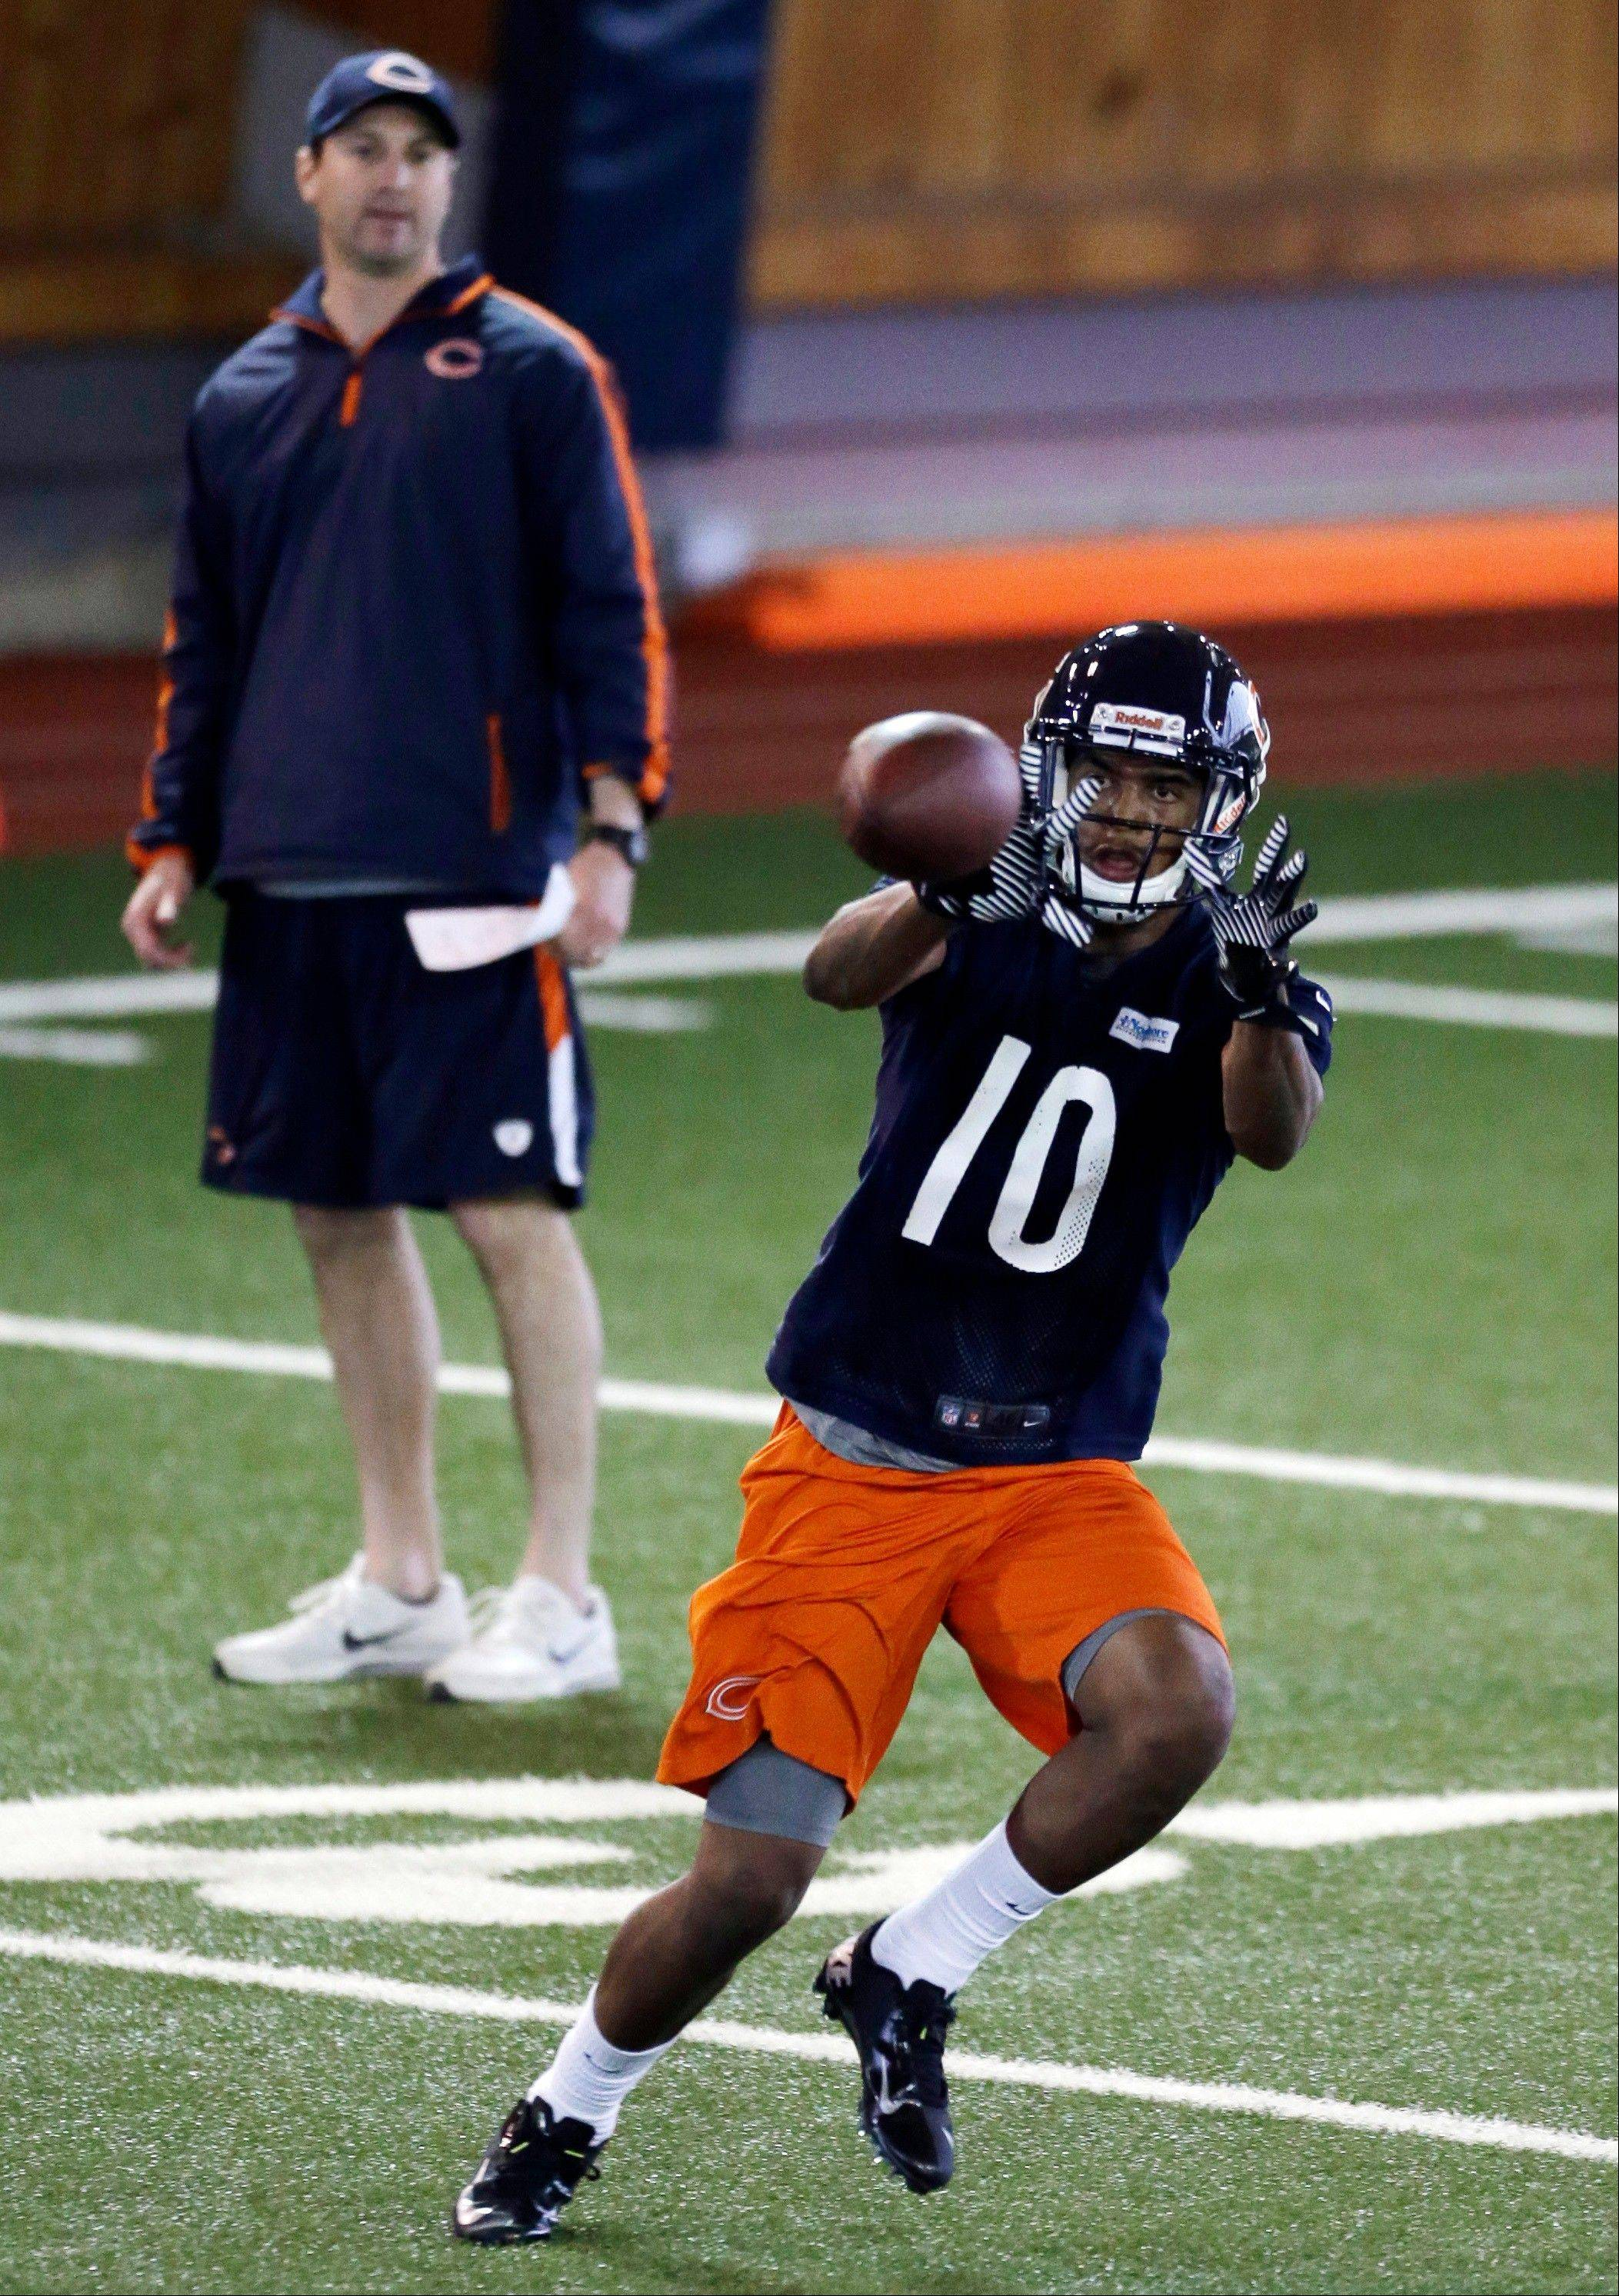 Bears receiver Marquess Wilson catches a pass during rookie minicamp at Halas Hall.